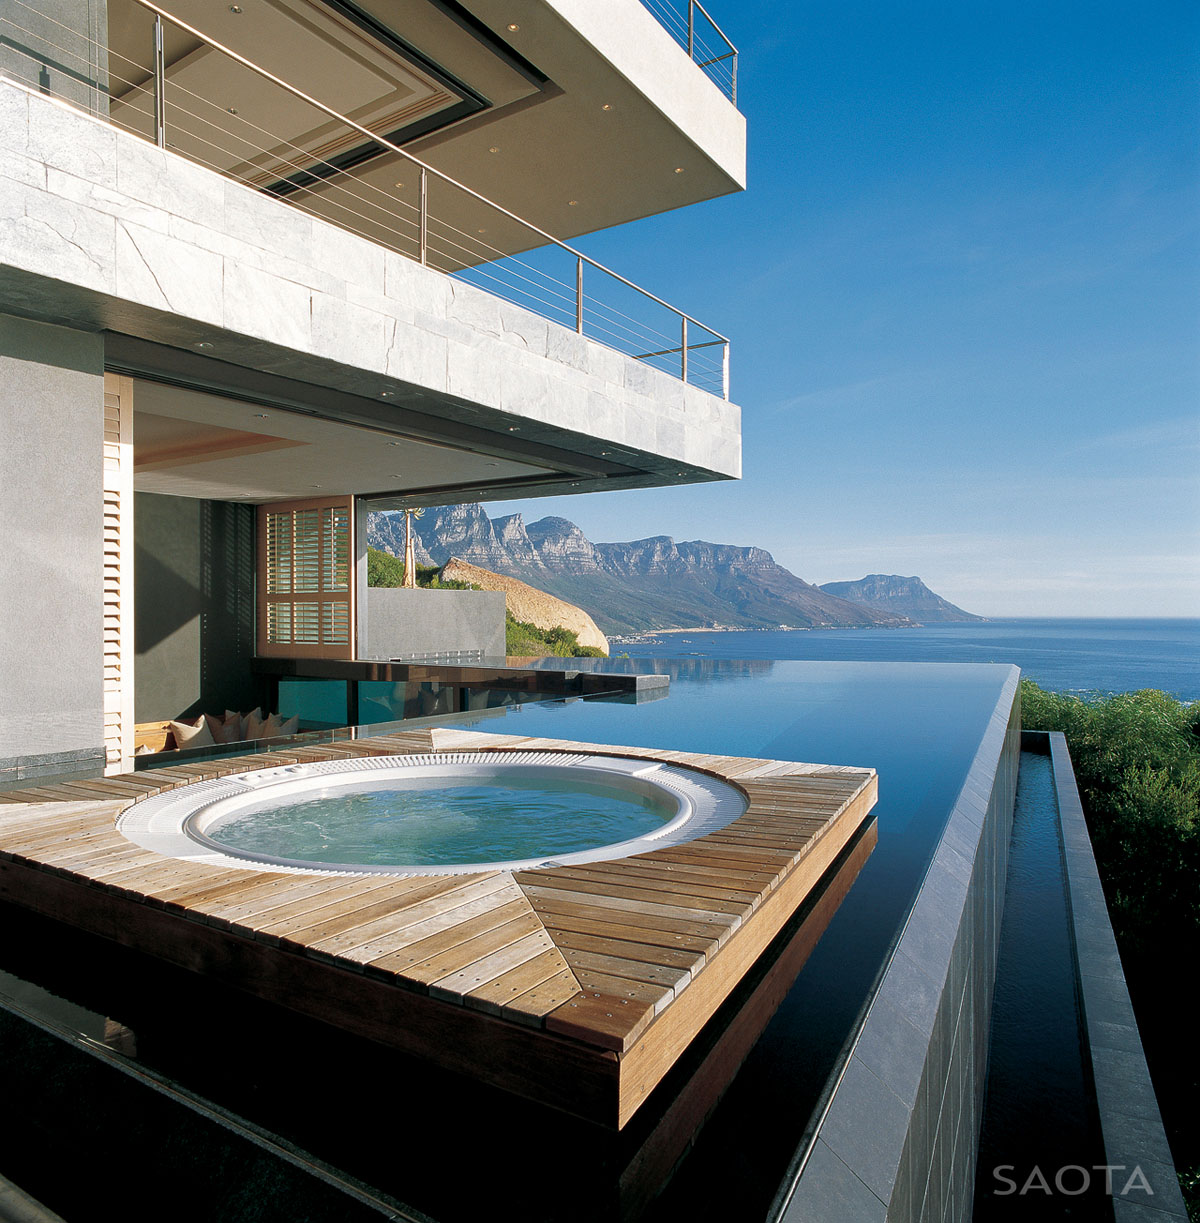 Wpc Terrasse Test Amazing Oceanfront House With Transparent Swimming Pool